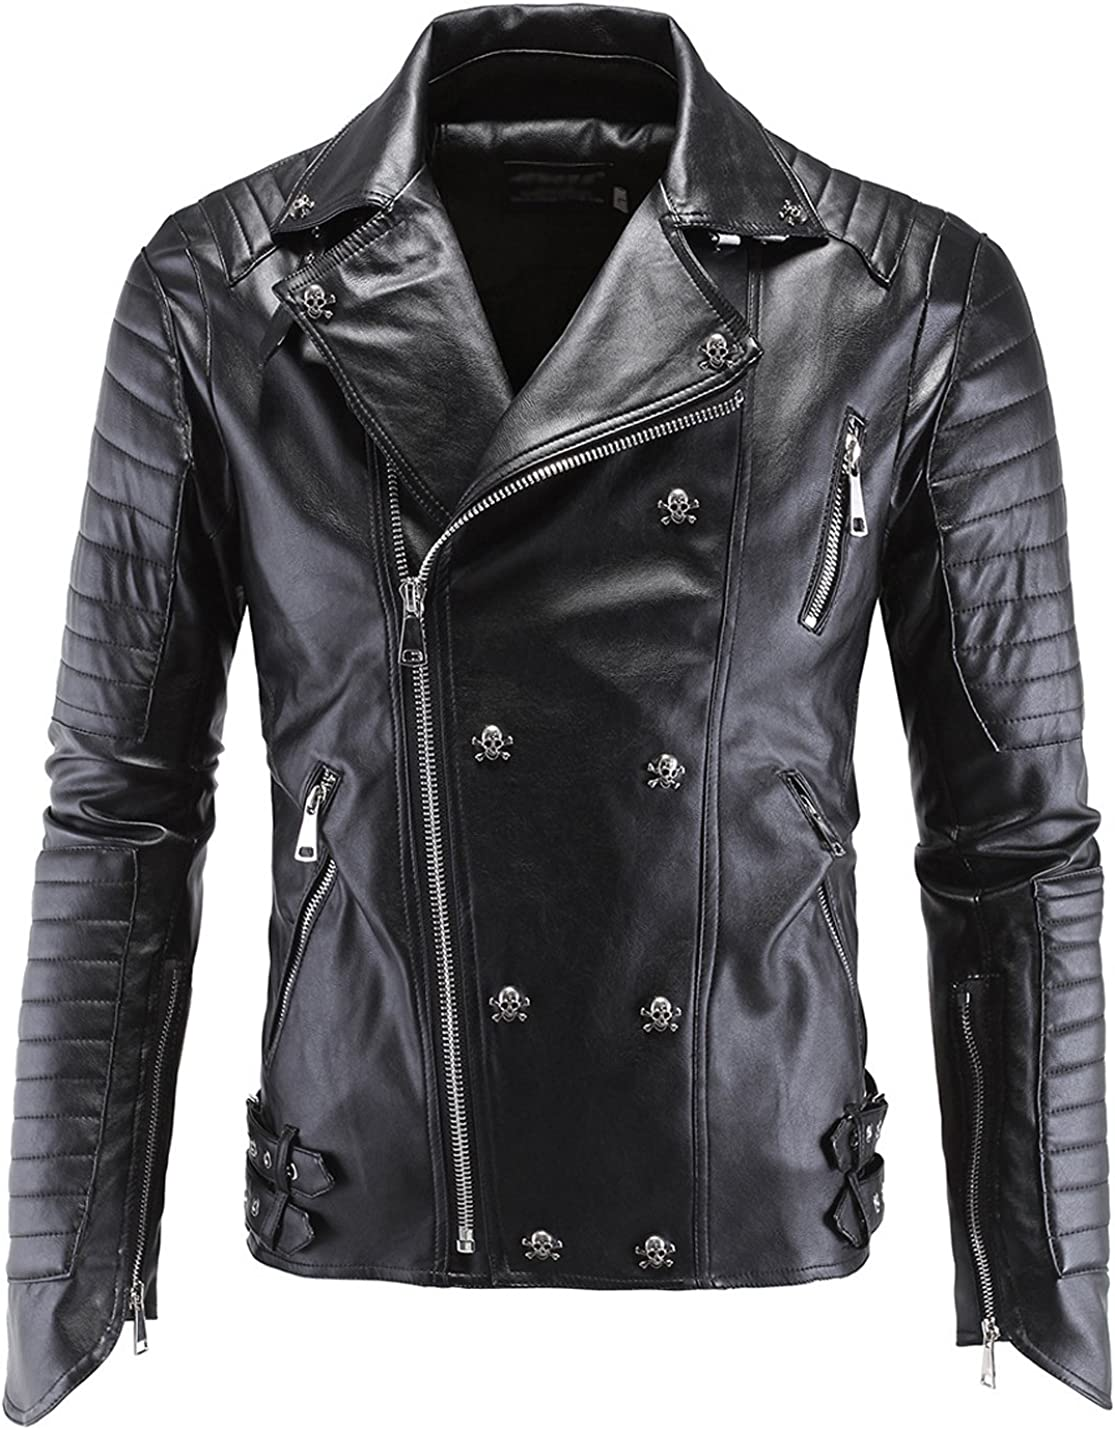 Detroit Mall Tanming Manufacturer OFFicial shop Men's Classic Skull Studded Jacket Faux Moto Leather